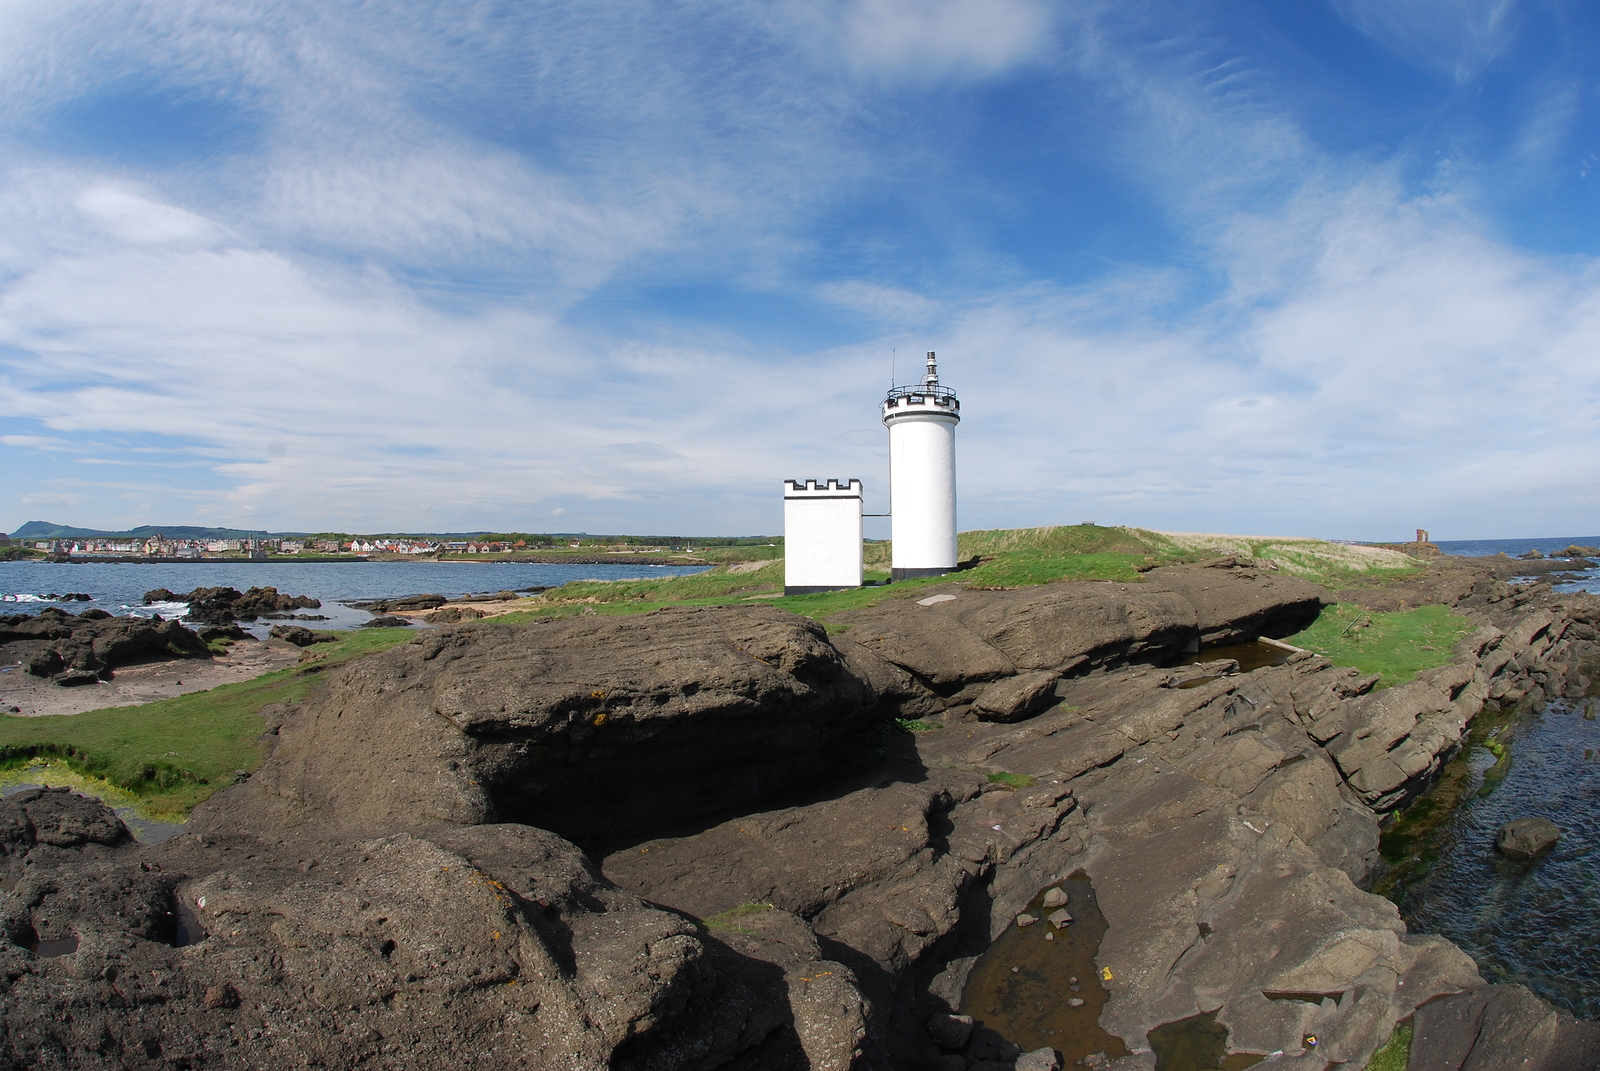 Visit the Ship Inn at Elie on your private guided tour of Scotland for a refreshing drink